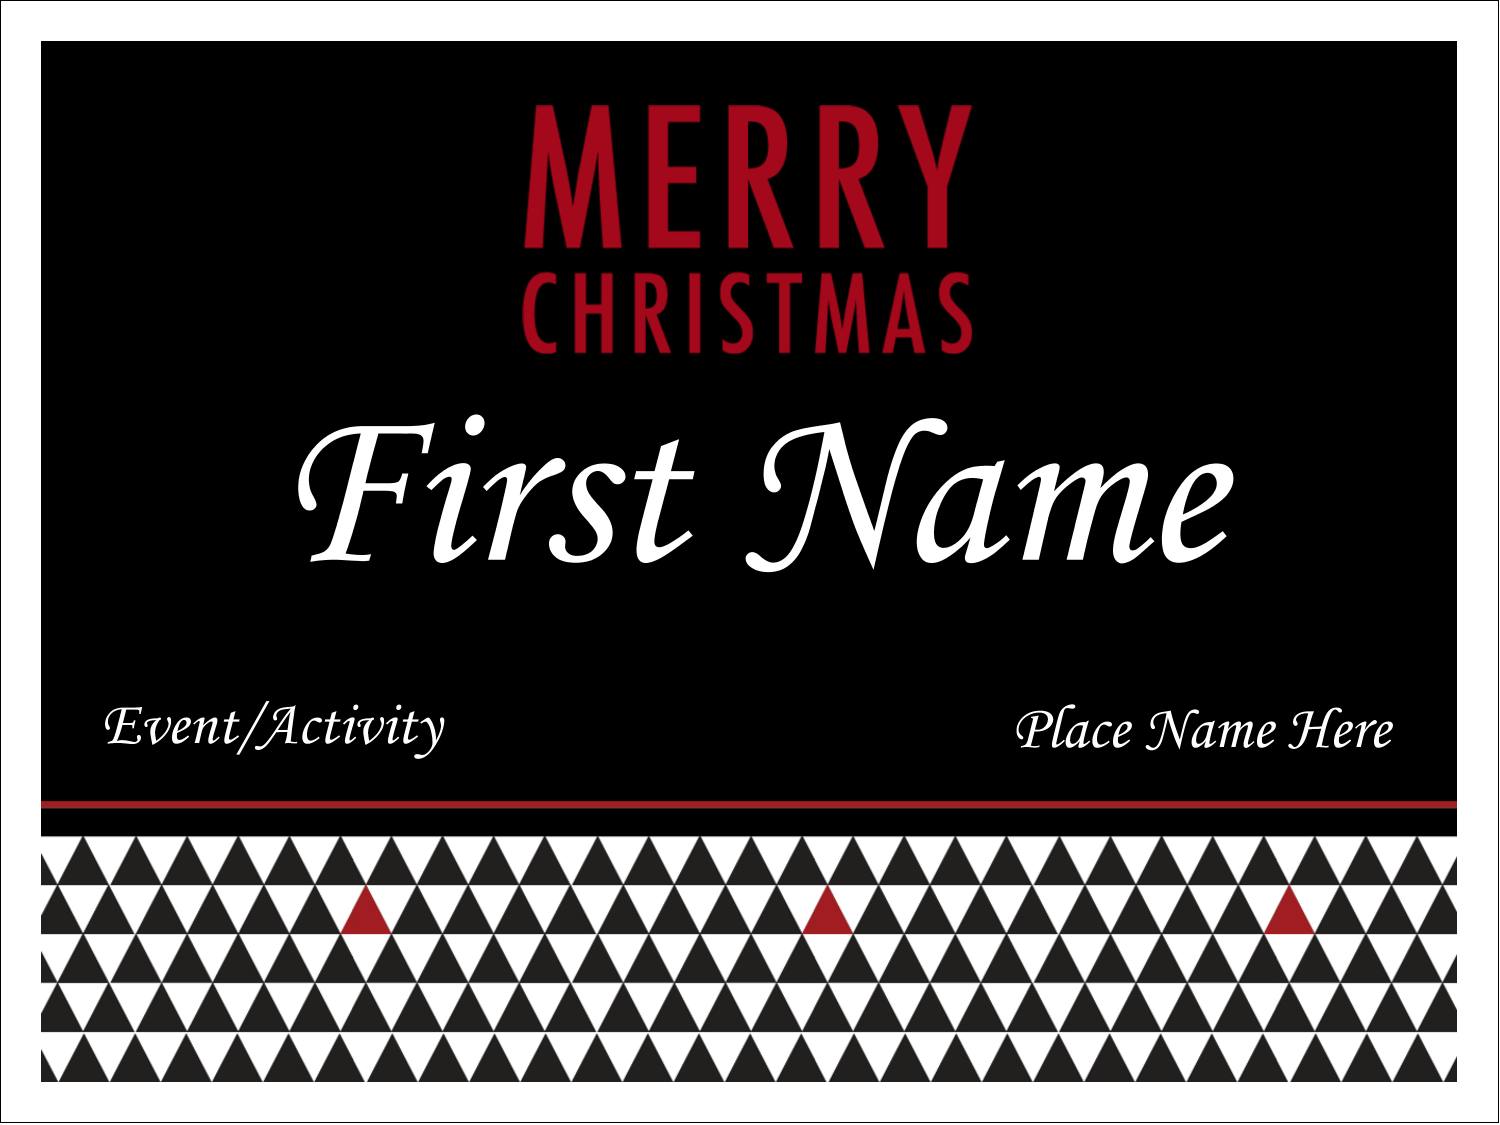 Add unique holiday style to custom projects with pre-designed Black and White templates.